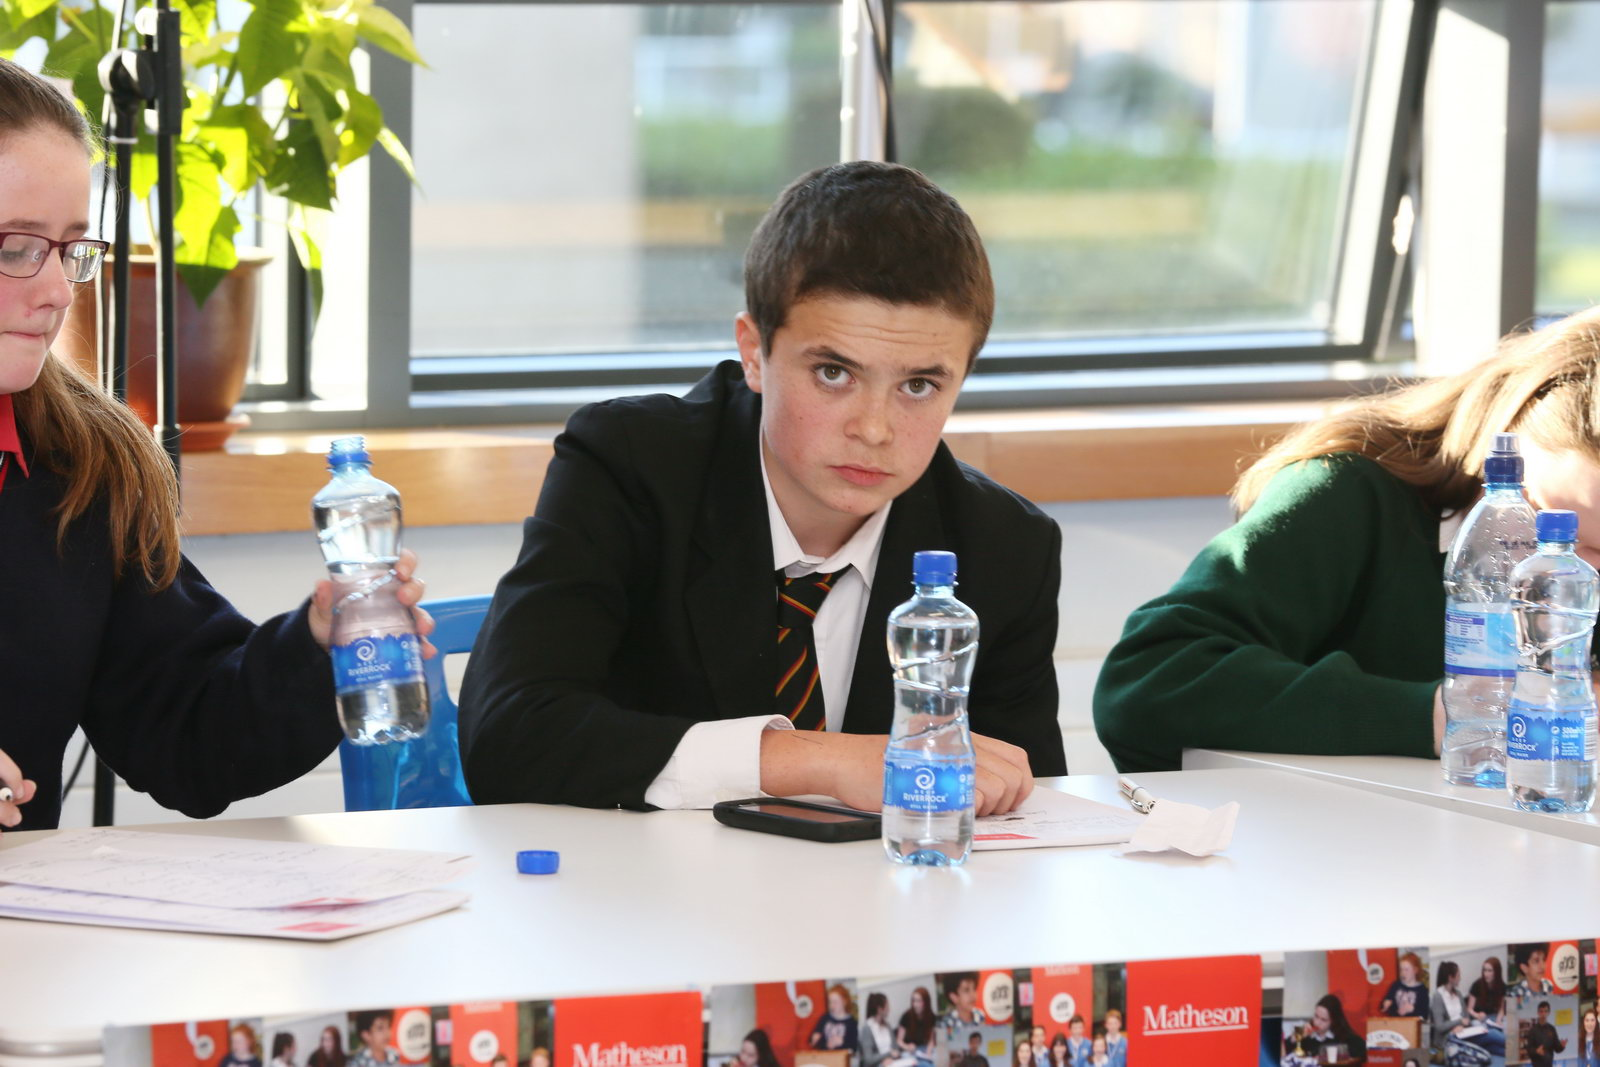 LoRes-image_Matheson-Debating-Mace-Competition-2015_060